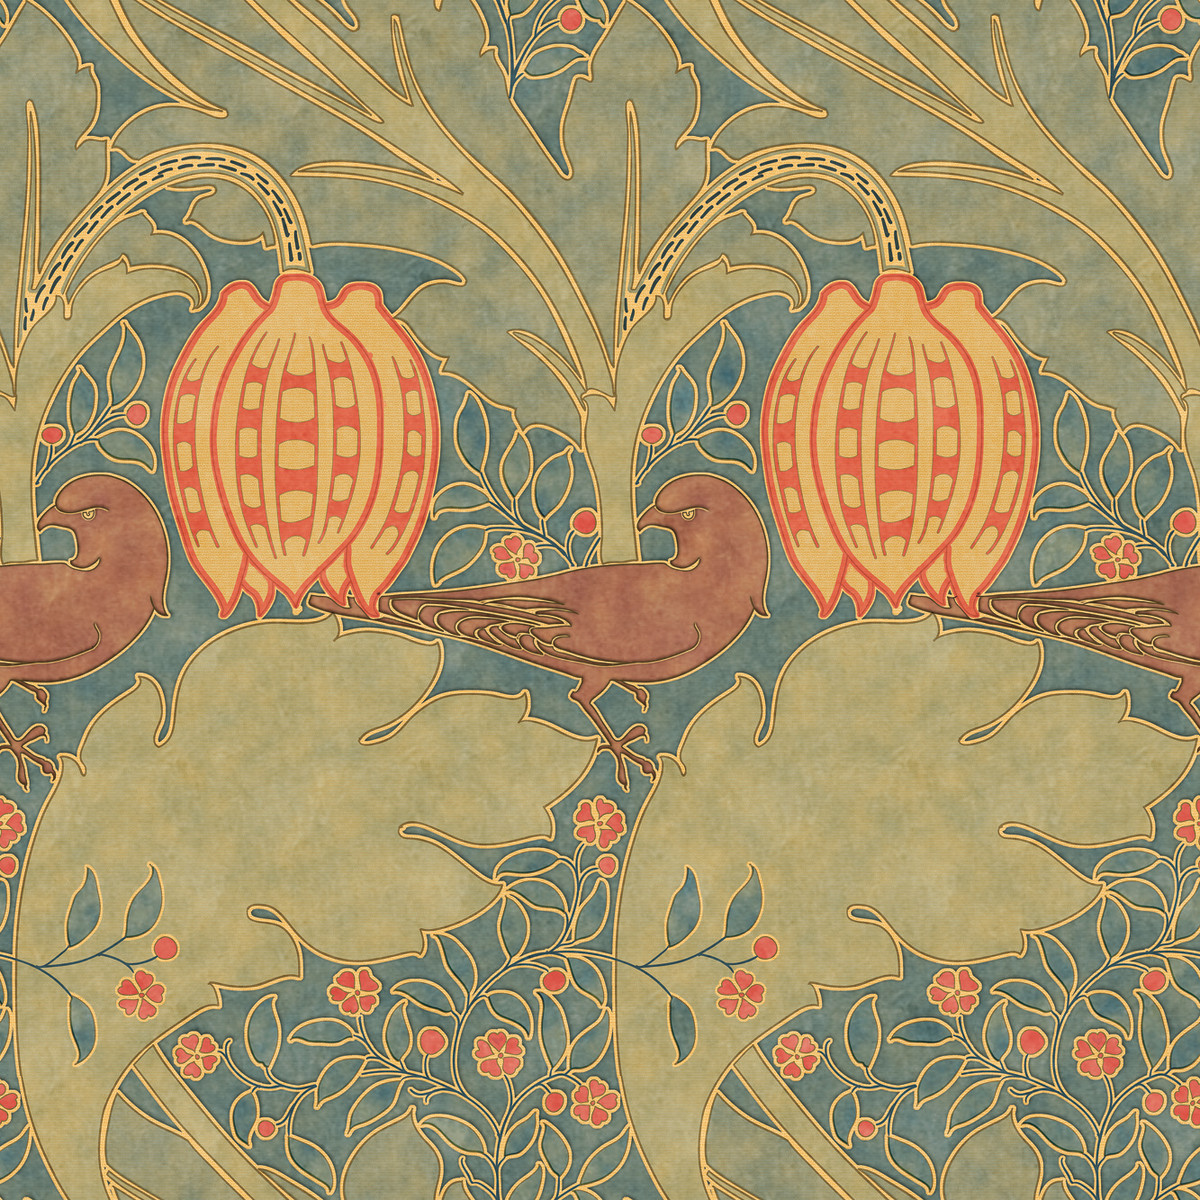 'Falcon and Lily' is a Voysey design of 1905, available from Trustworth.